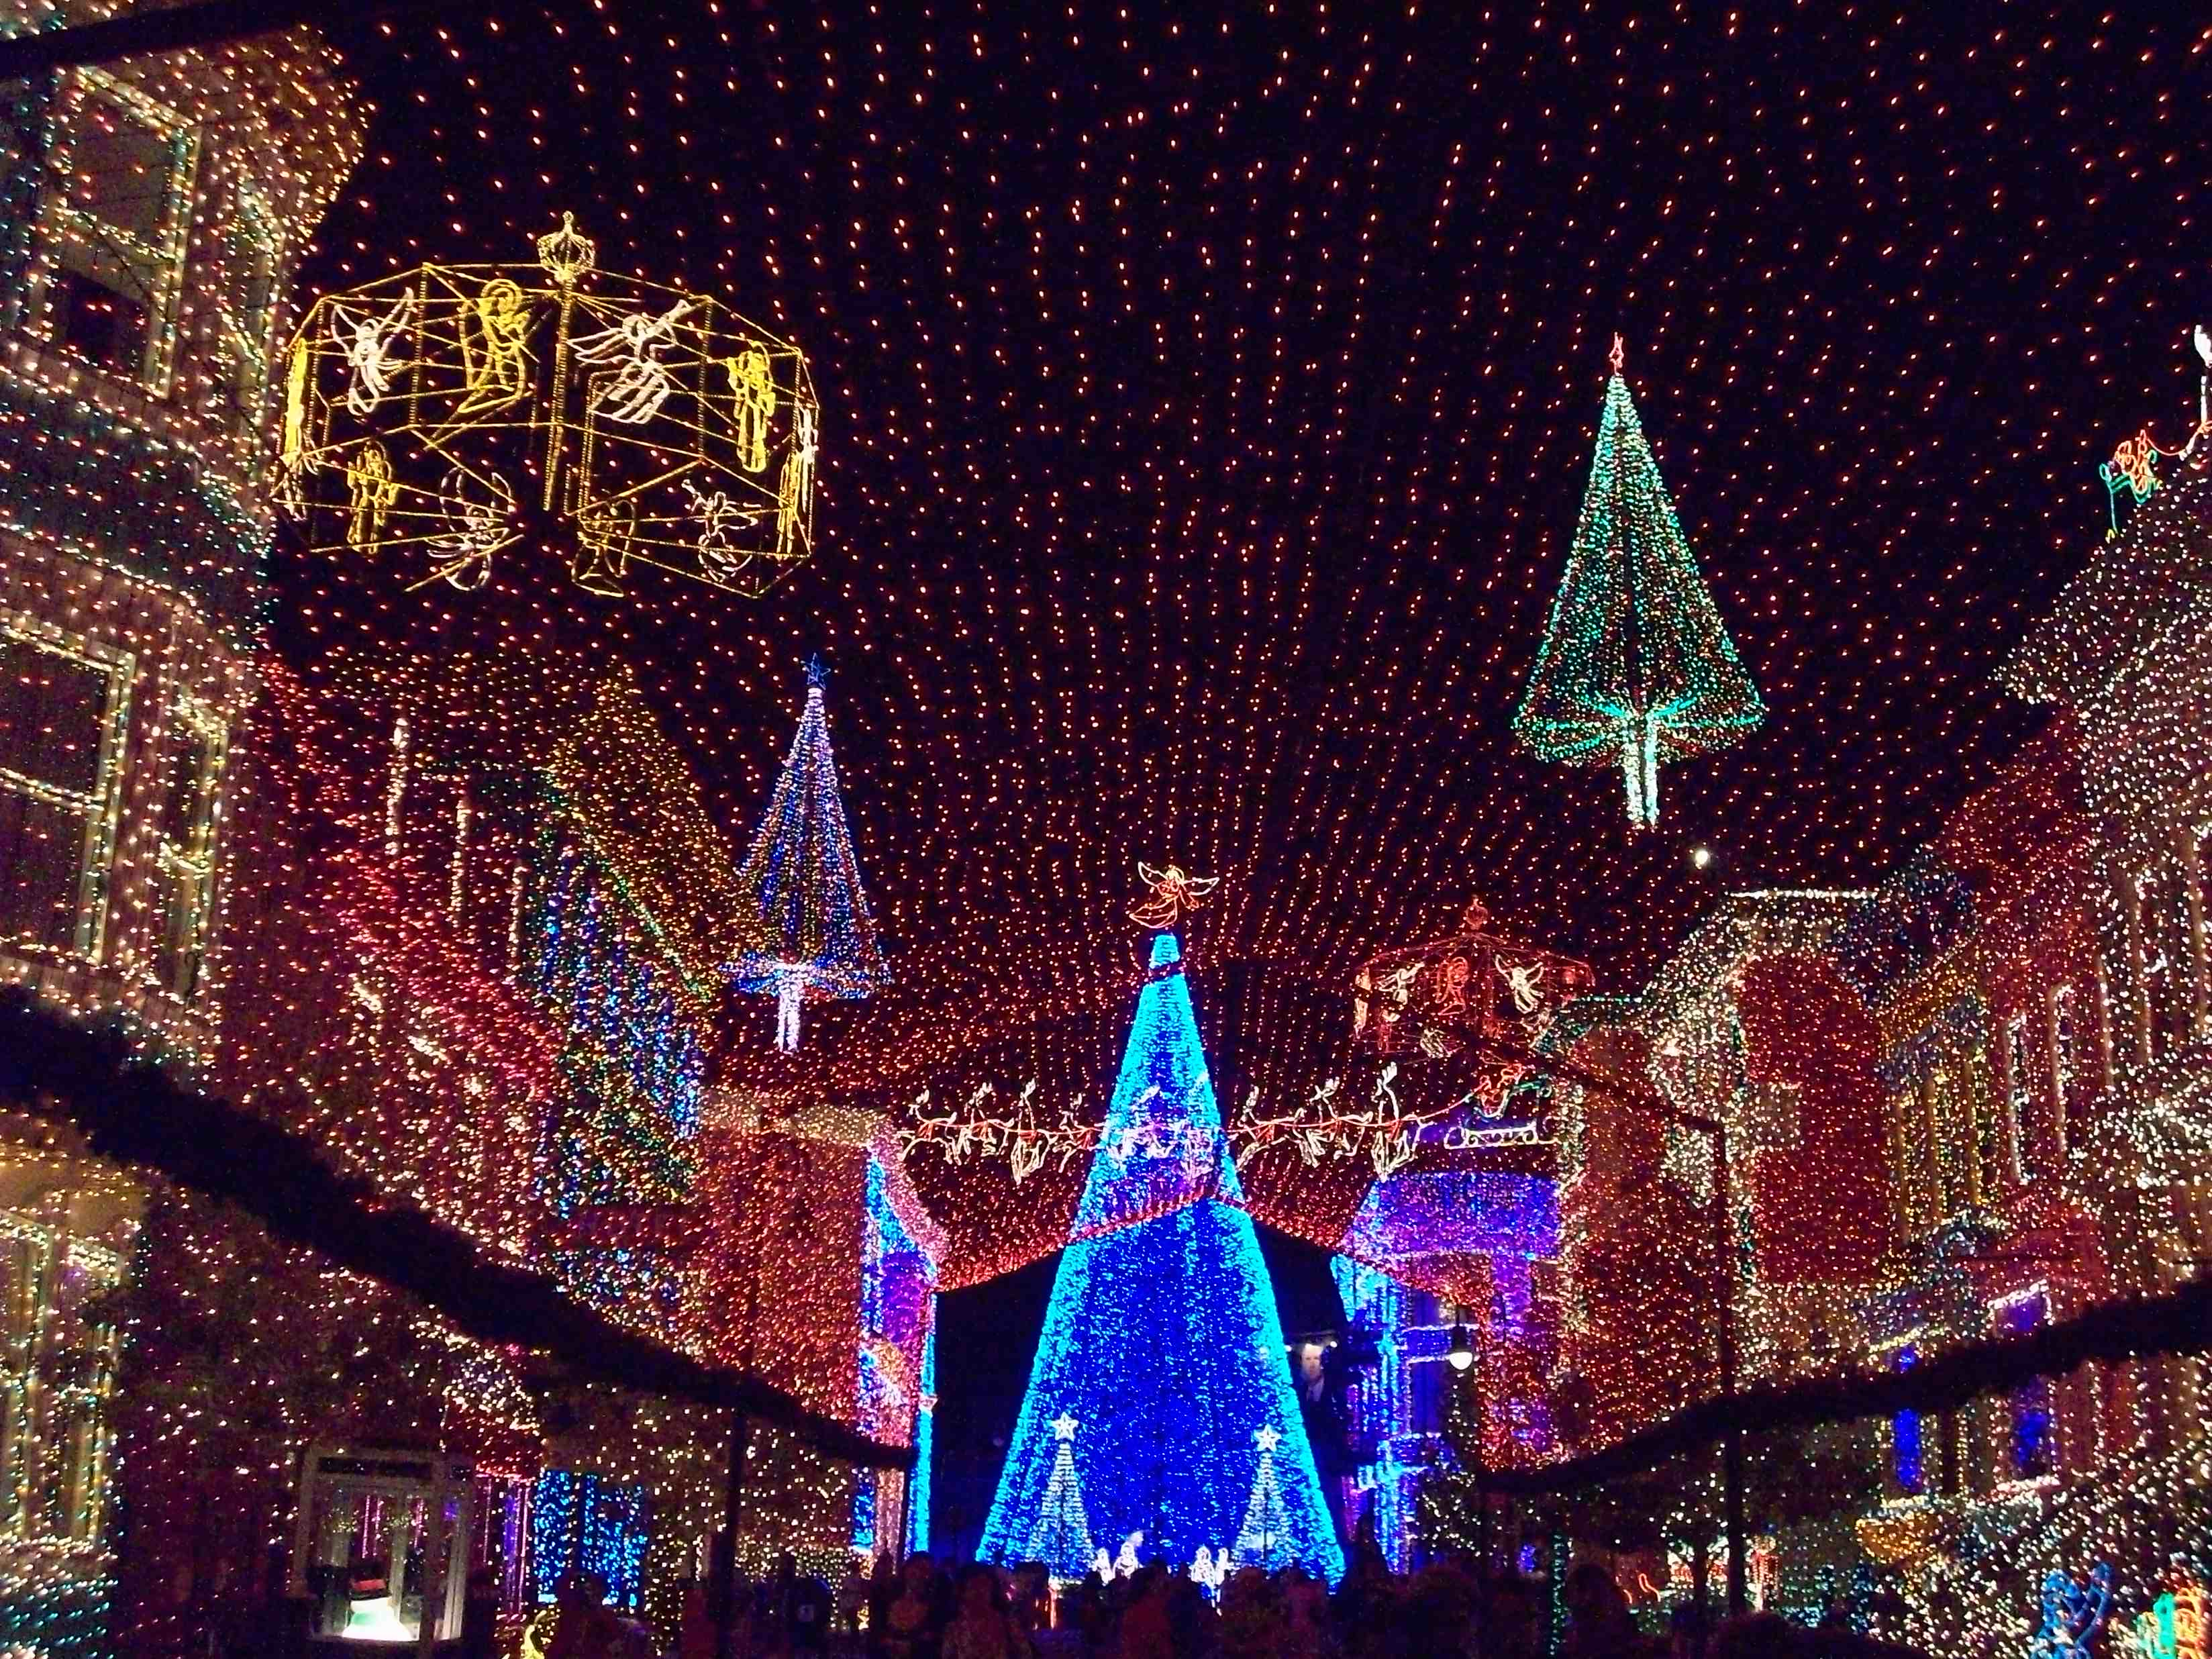 Wordless Wednesday: Osborne Family Lights are Quite the Spectacle ...